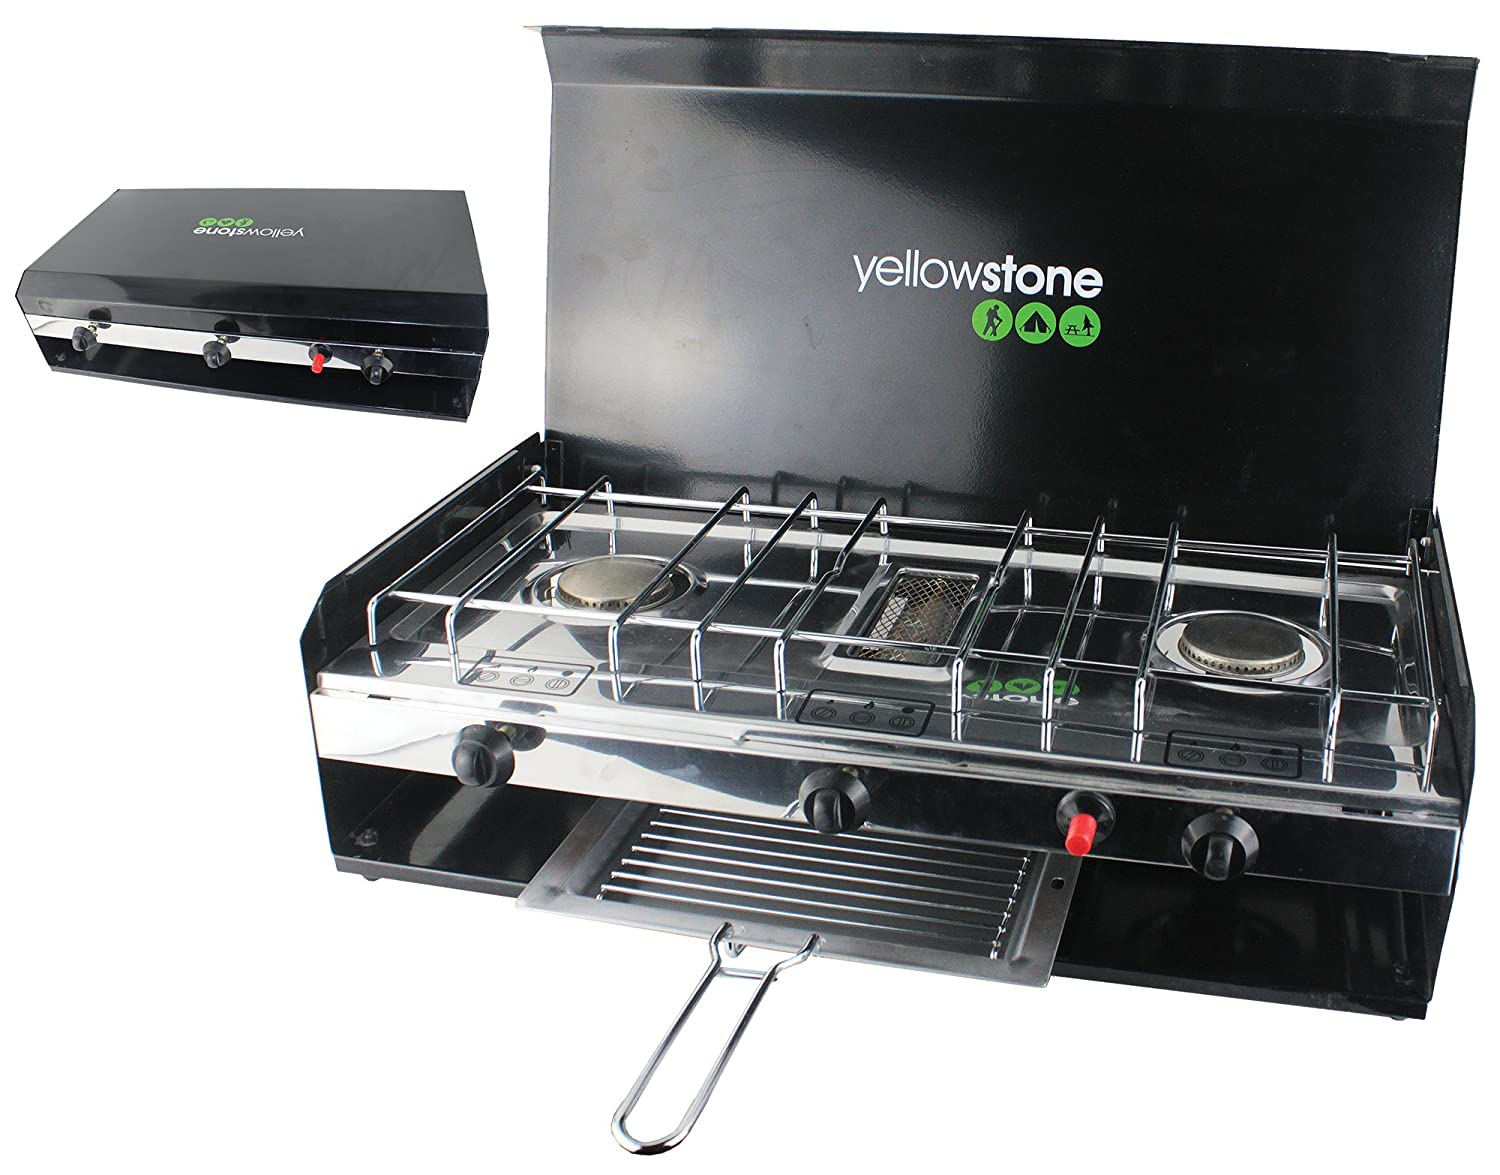 5532dd23bfd Yellowstone Outdoor Double Burner available in Multicolore -  Amazon.co.uk   Sports   Outdoors